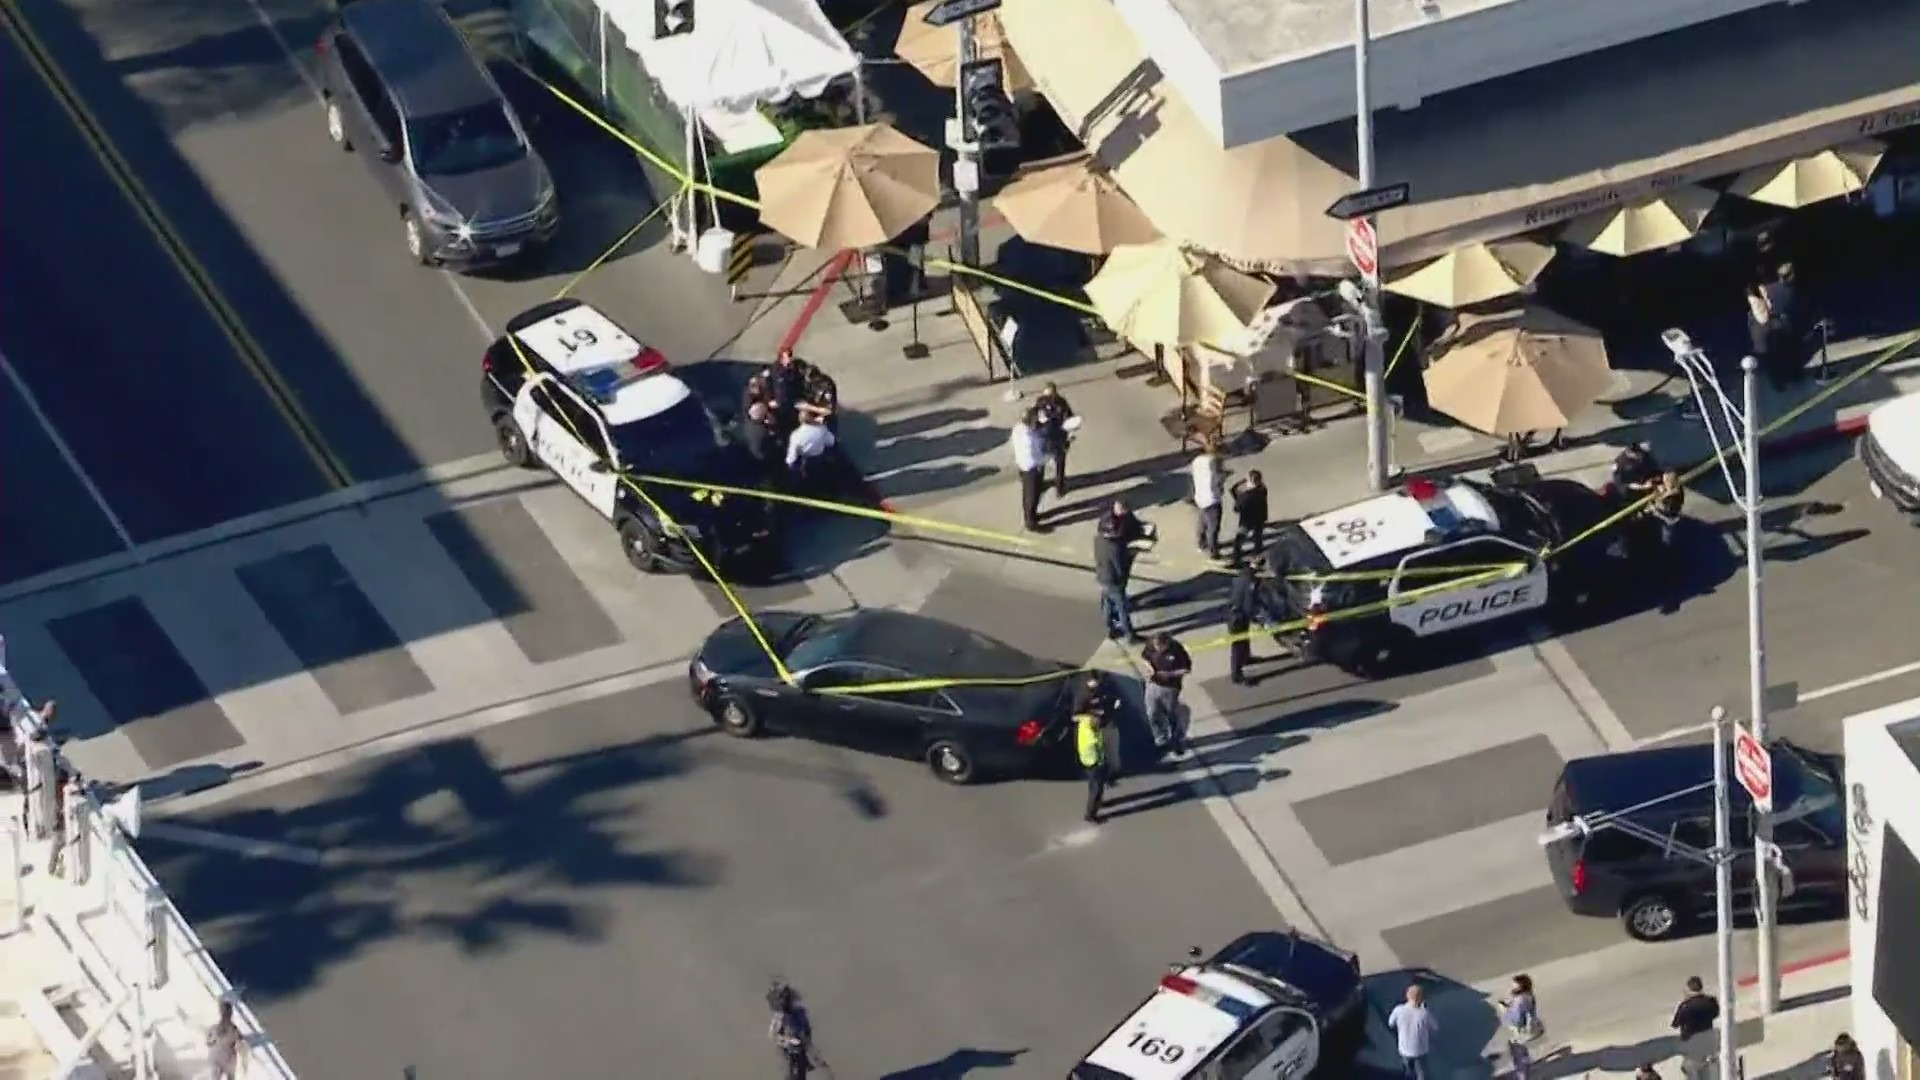 Police respond to shots fired during a robbery at a Beverly Hills restaurant on March 4, 2021. (KTLA)